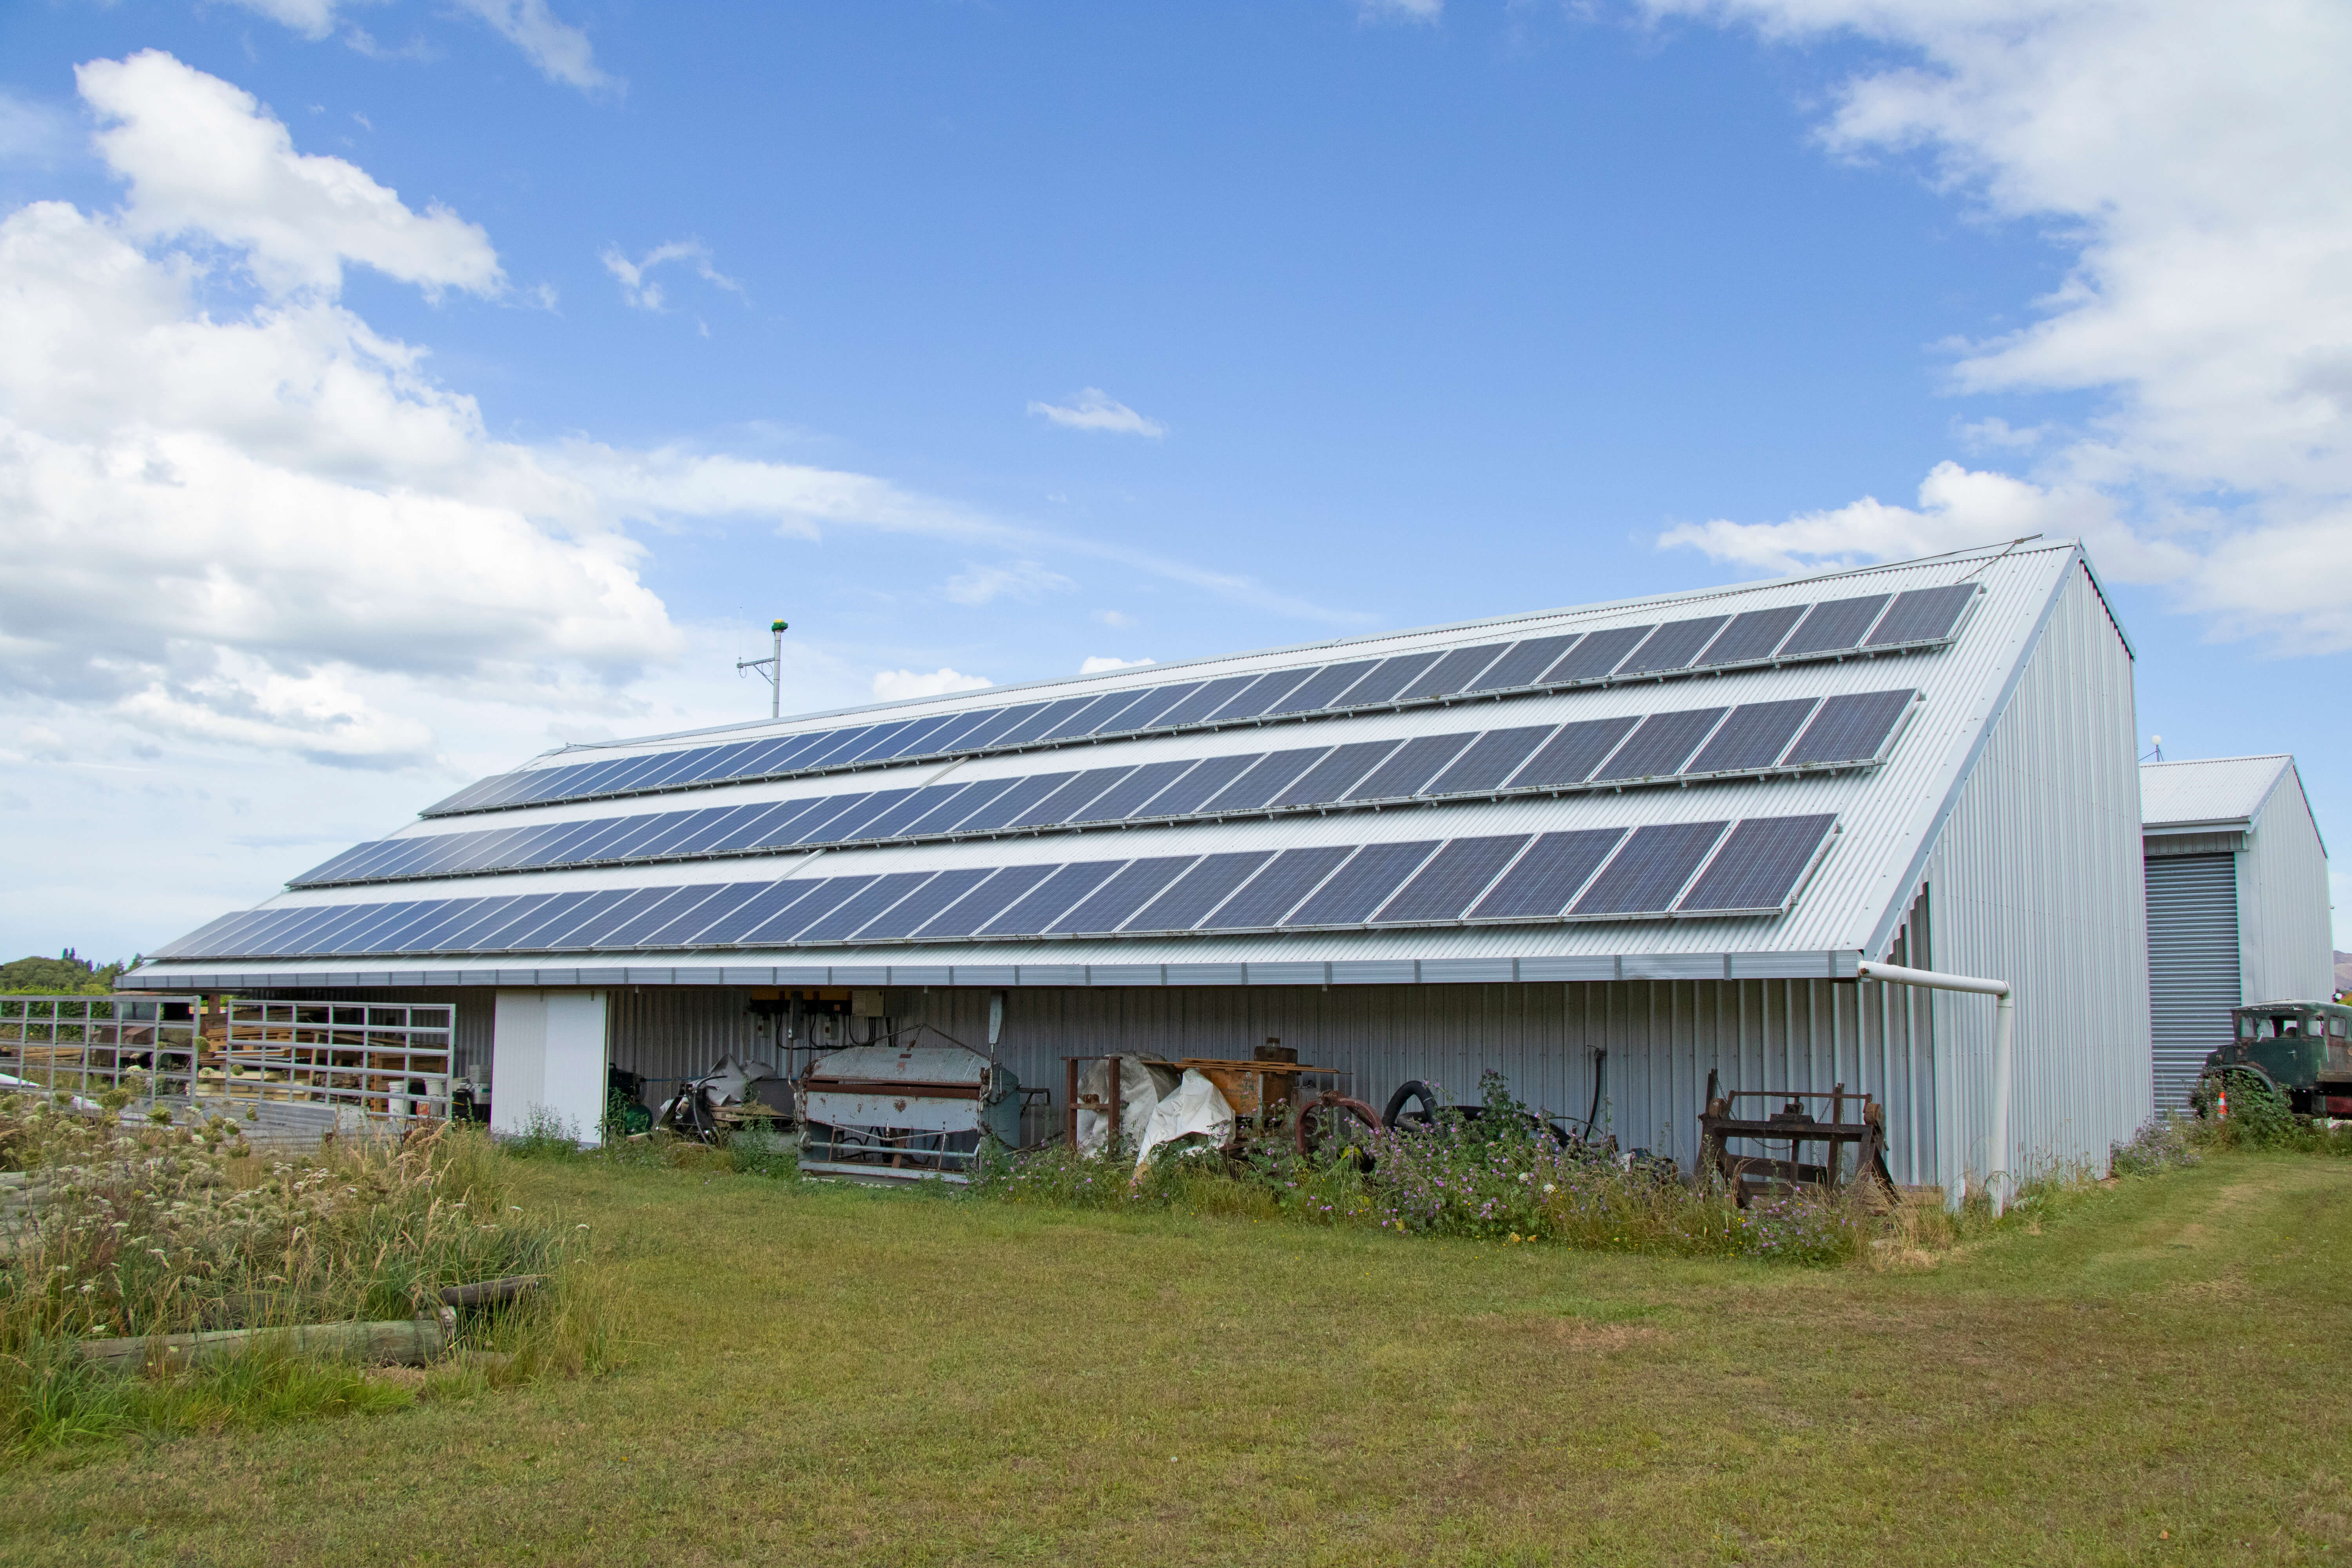 Understand more about solar panel installation